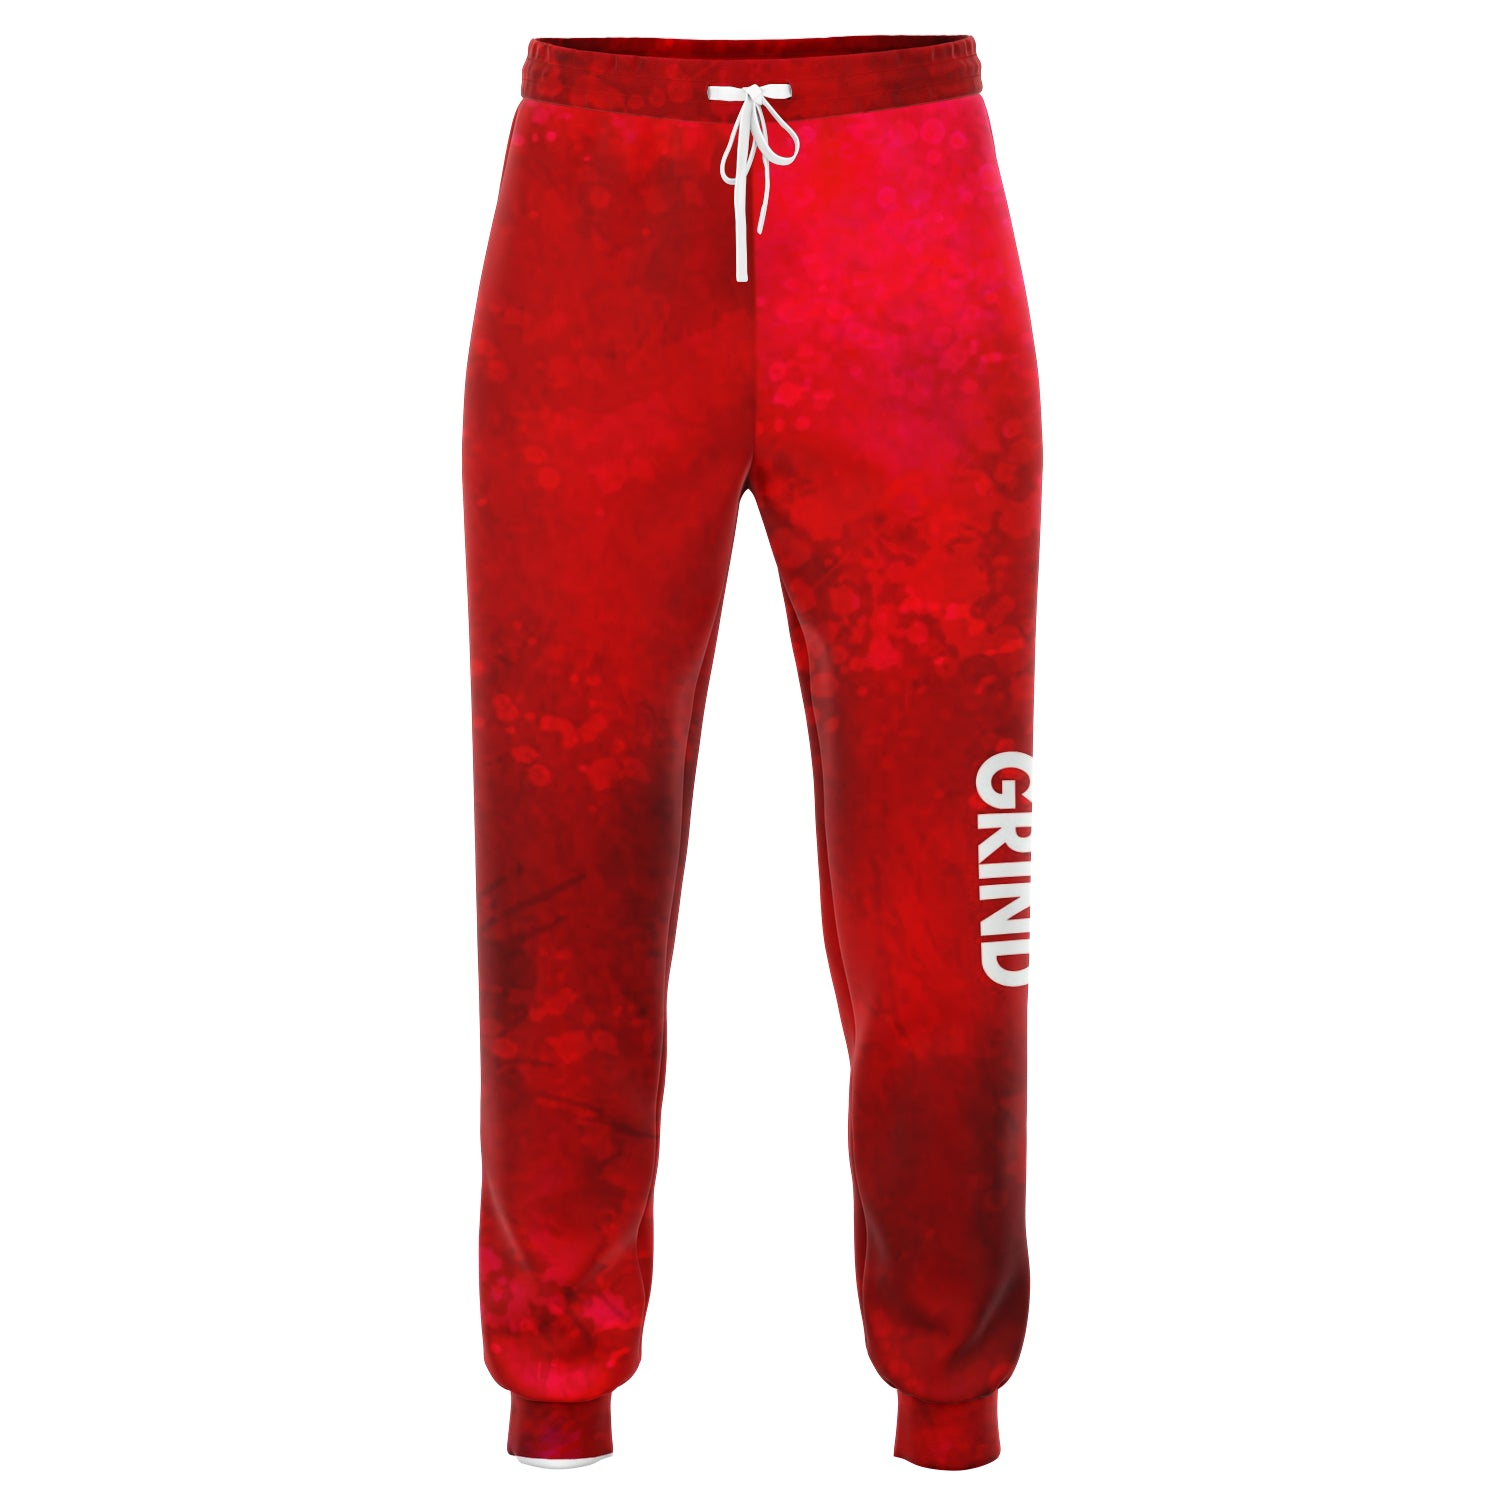 Righteous Red Joggers